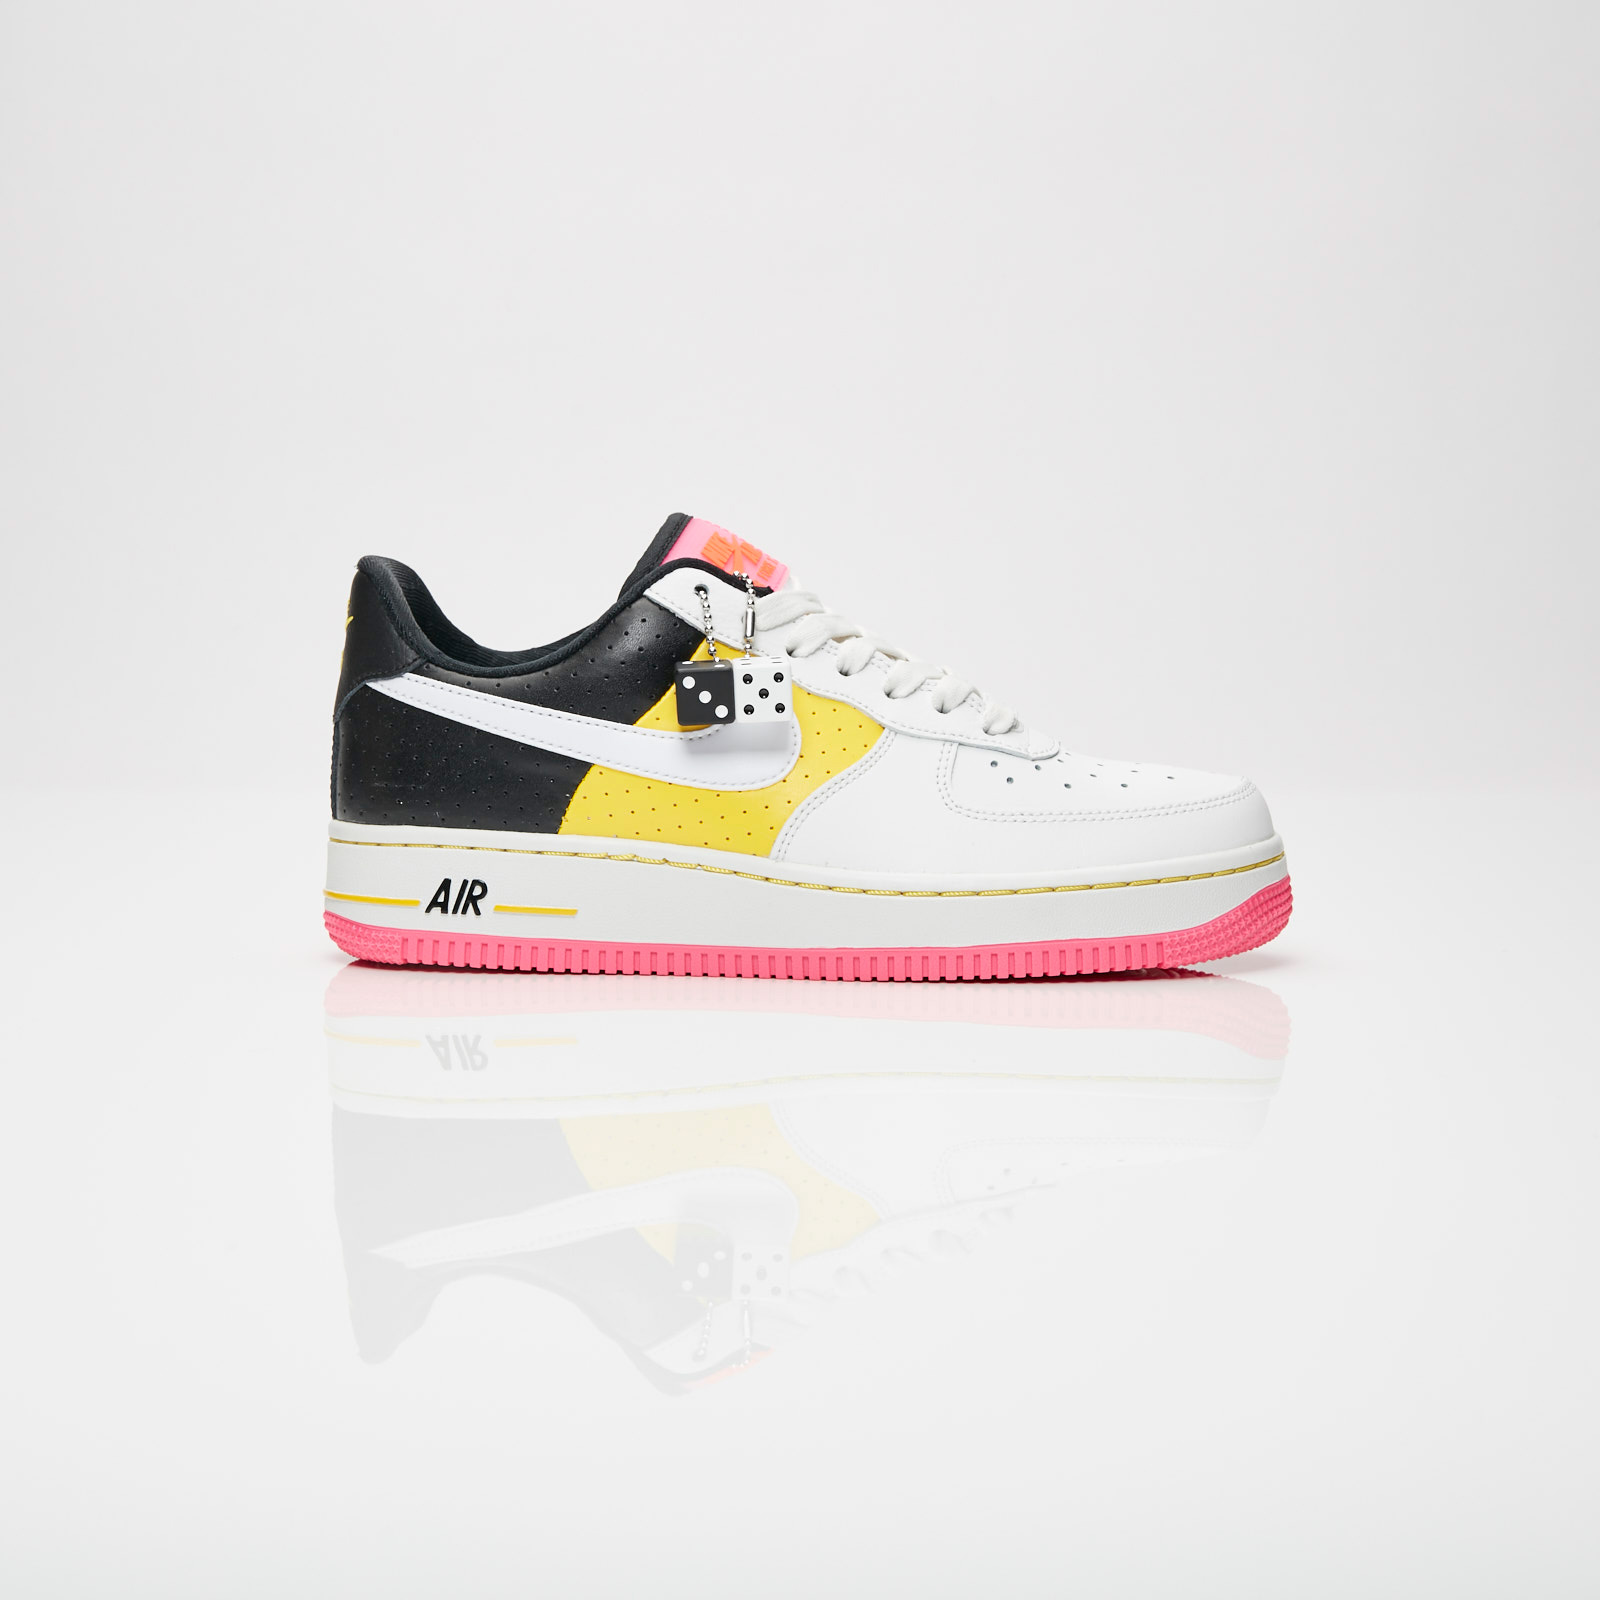 602e30dc23917 Nike Wmns Air Force 1 07 SE Moto - At2583-100 - Sneakersnstuff ...